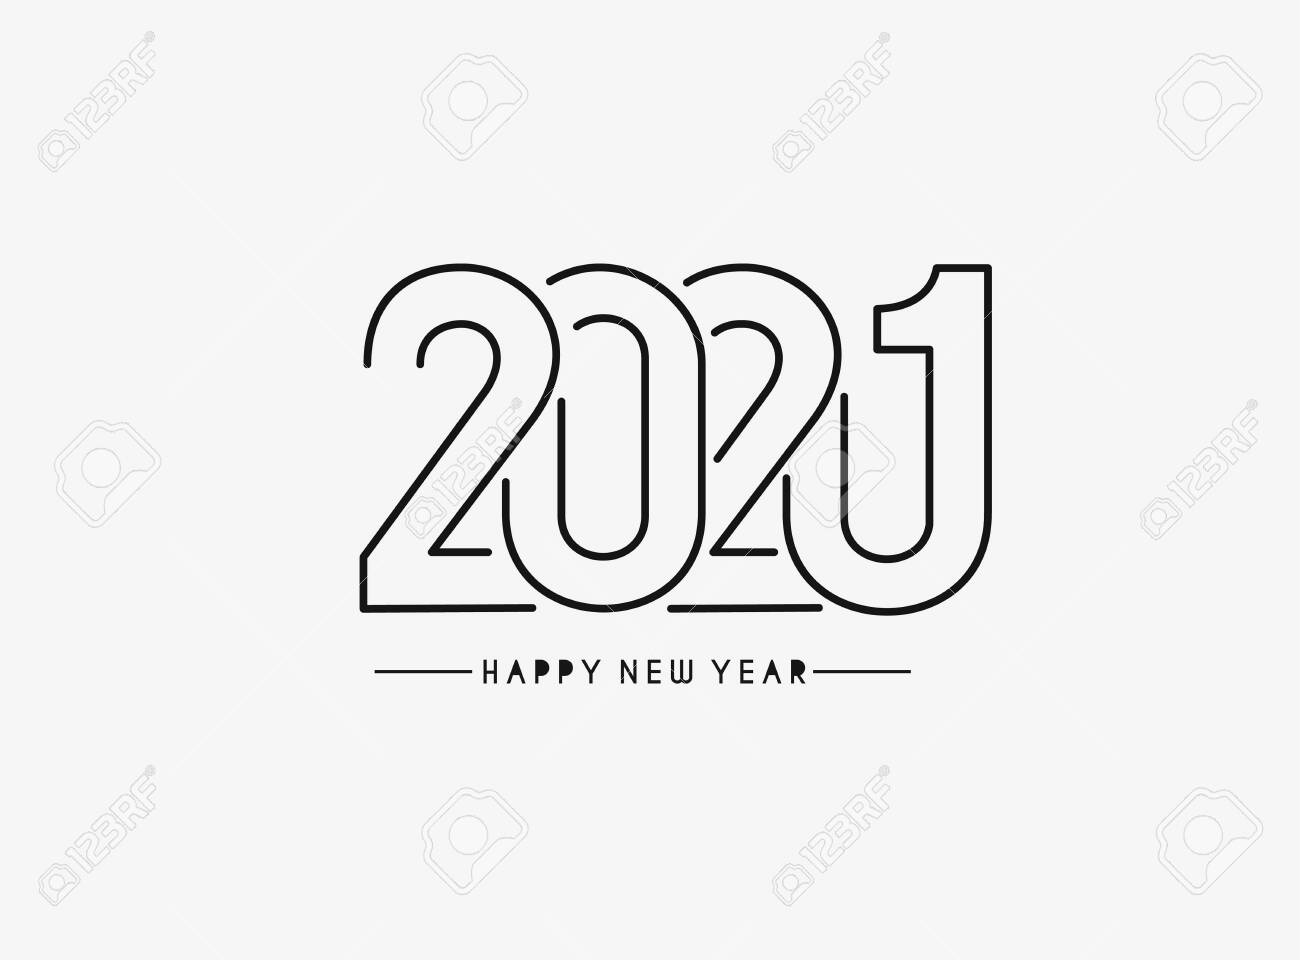 Happy New Year 2021 Text Typography Design Patter Vector Illustration Royalty Free Cliparts Vectors And Stock Illustration Image 151728996